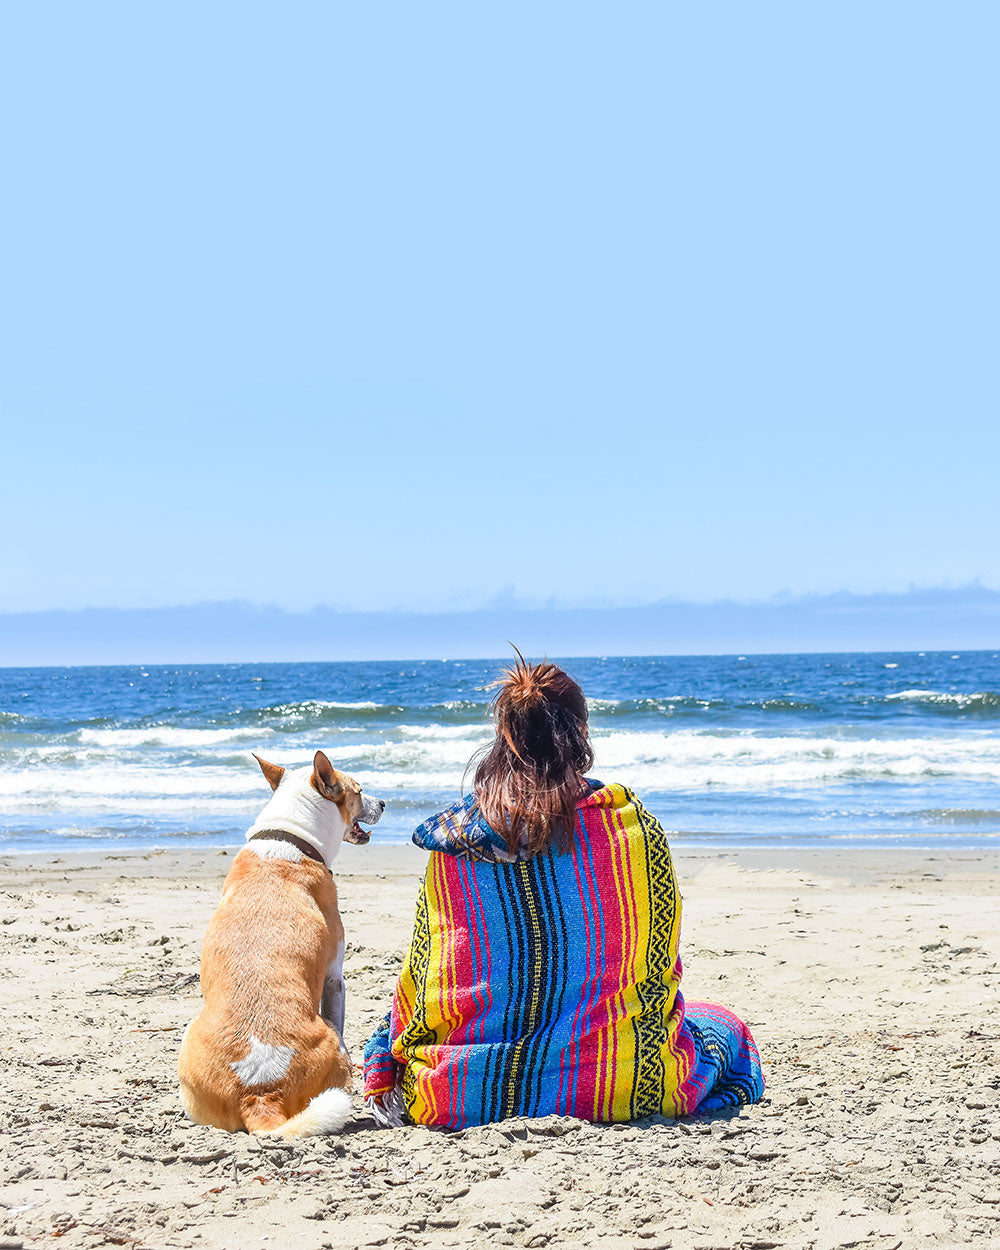 Relaxing at the beach with my best friend and my Sunshine Day Dream blanket. A cozy blanket that I can take anywhere my wanderlust spirit takes me.